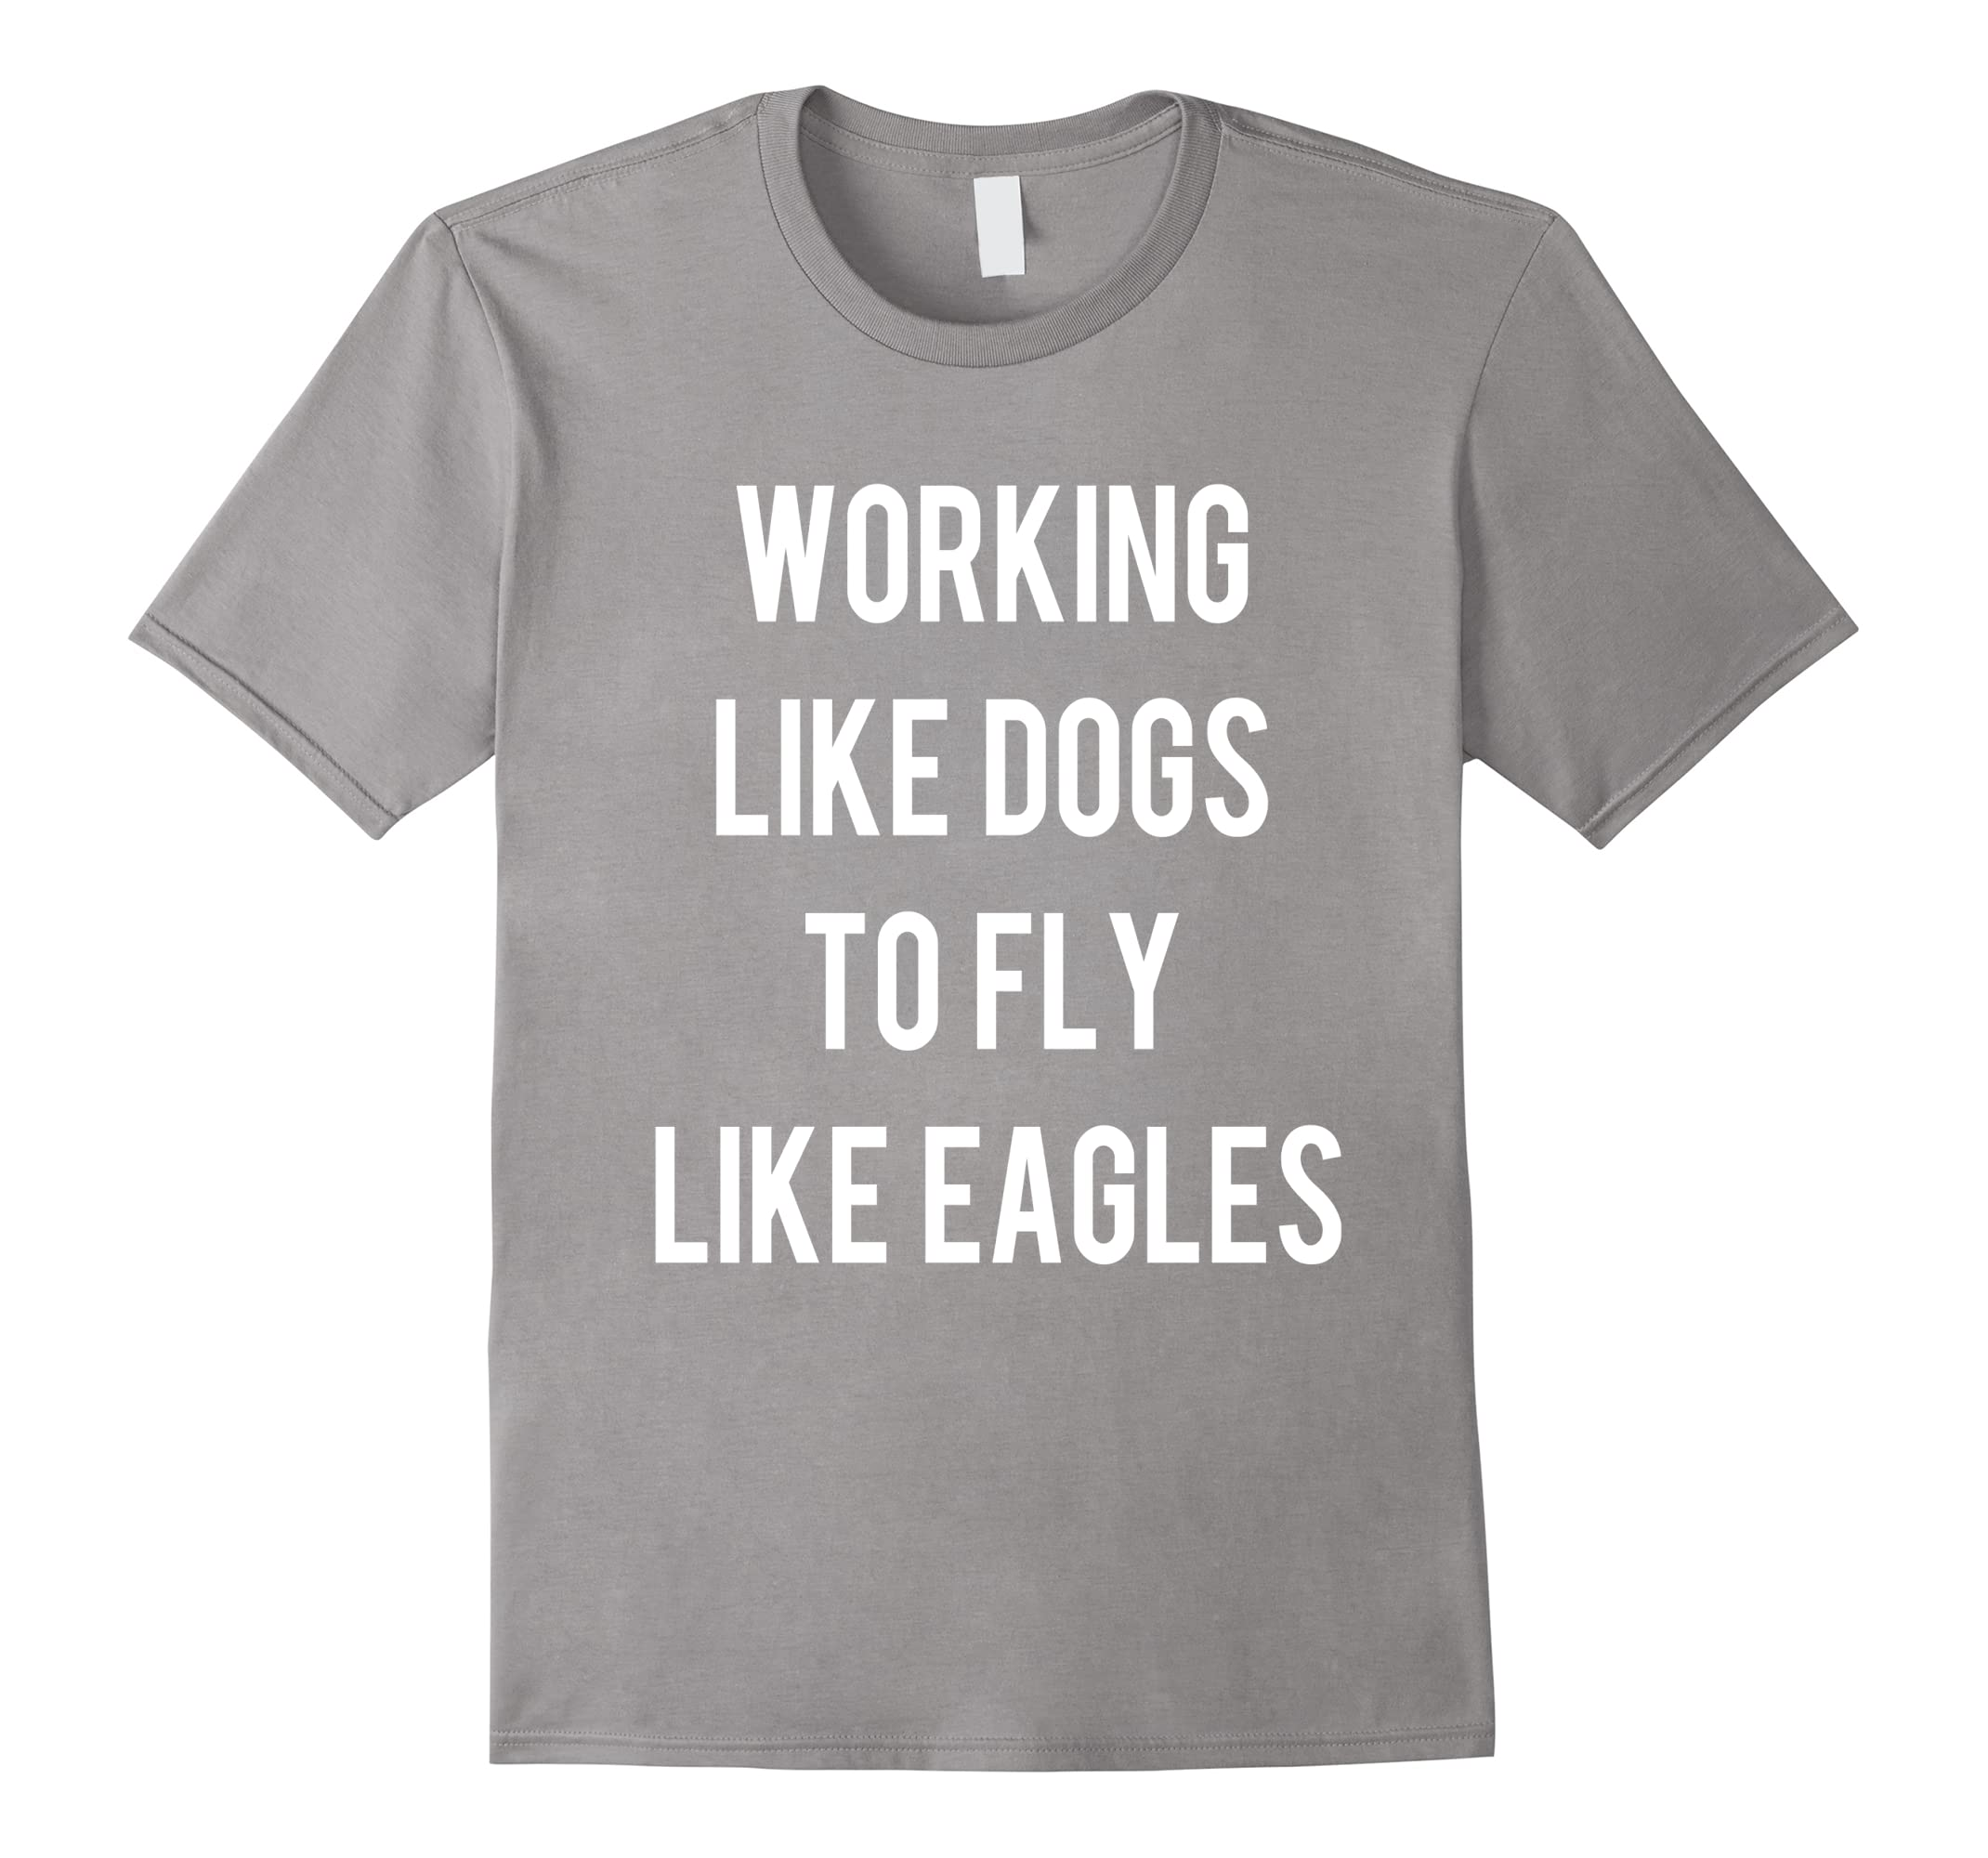 Working Like Dogs To Fly Like Eagles Shirt-ah my shirt one gift